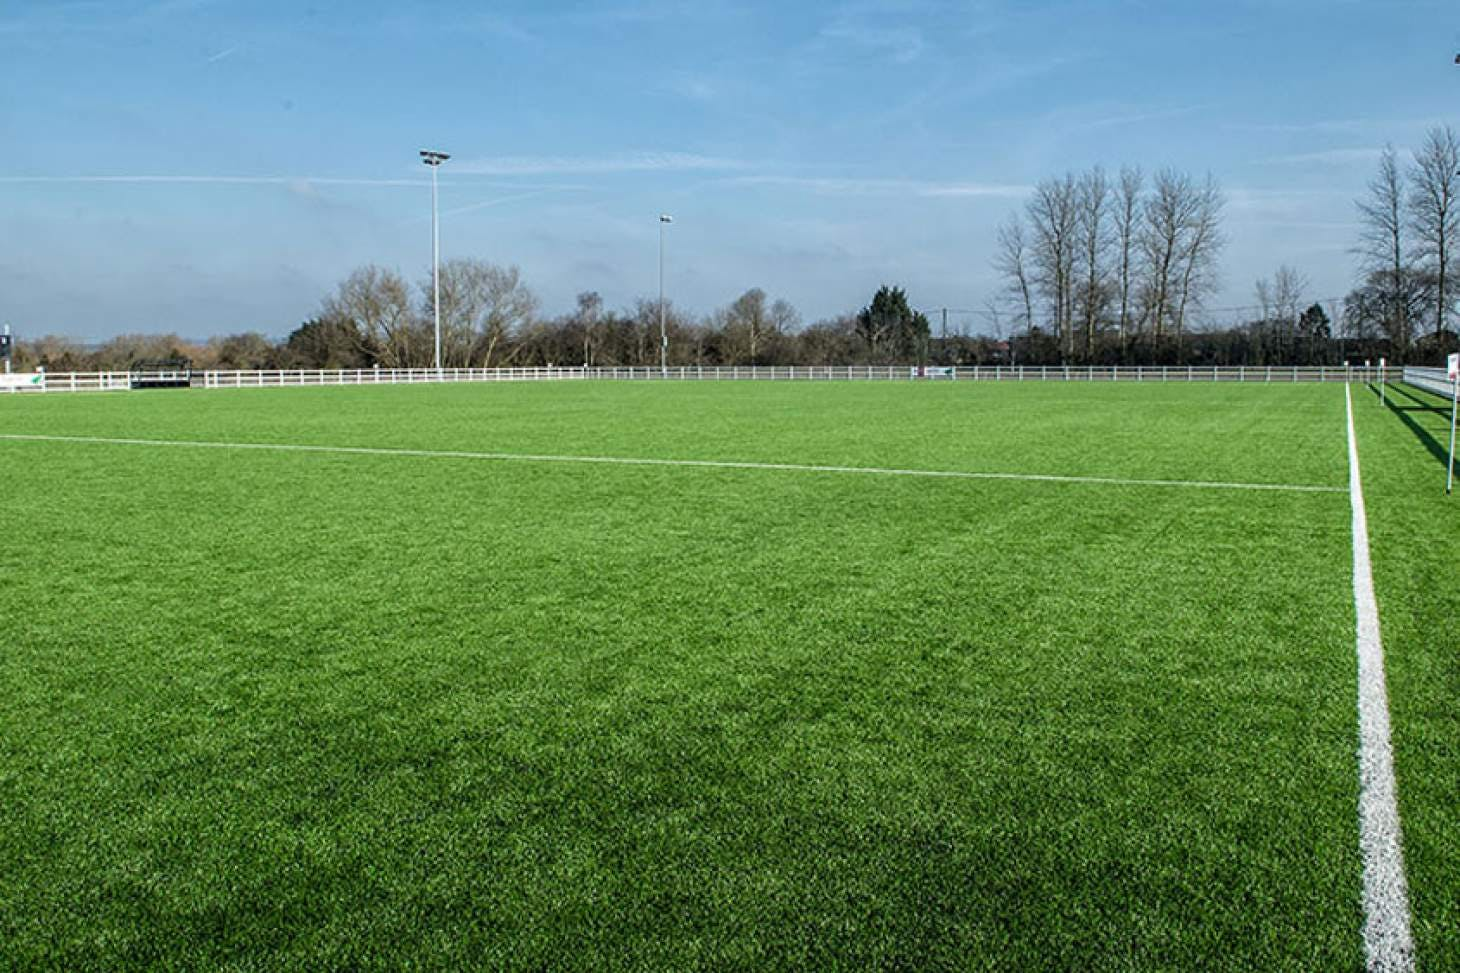 PlayFootball Keighley 5 a side | 3G Astroturf football pitch